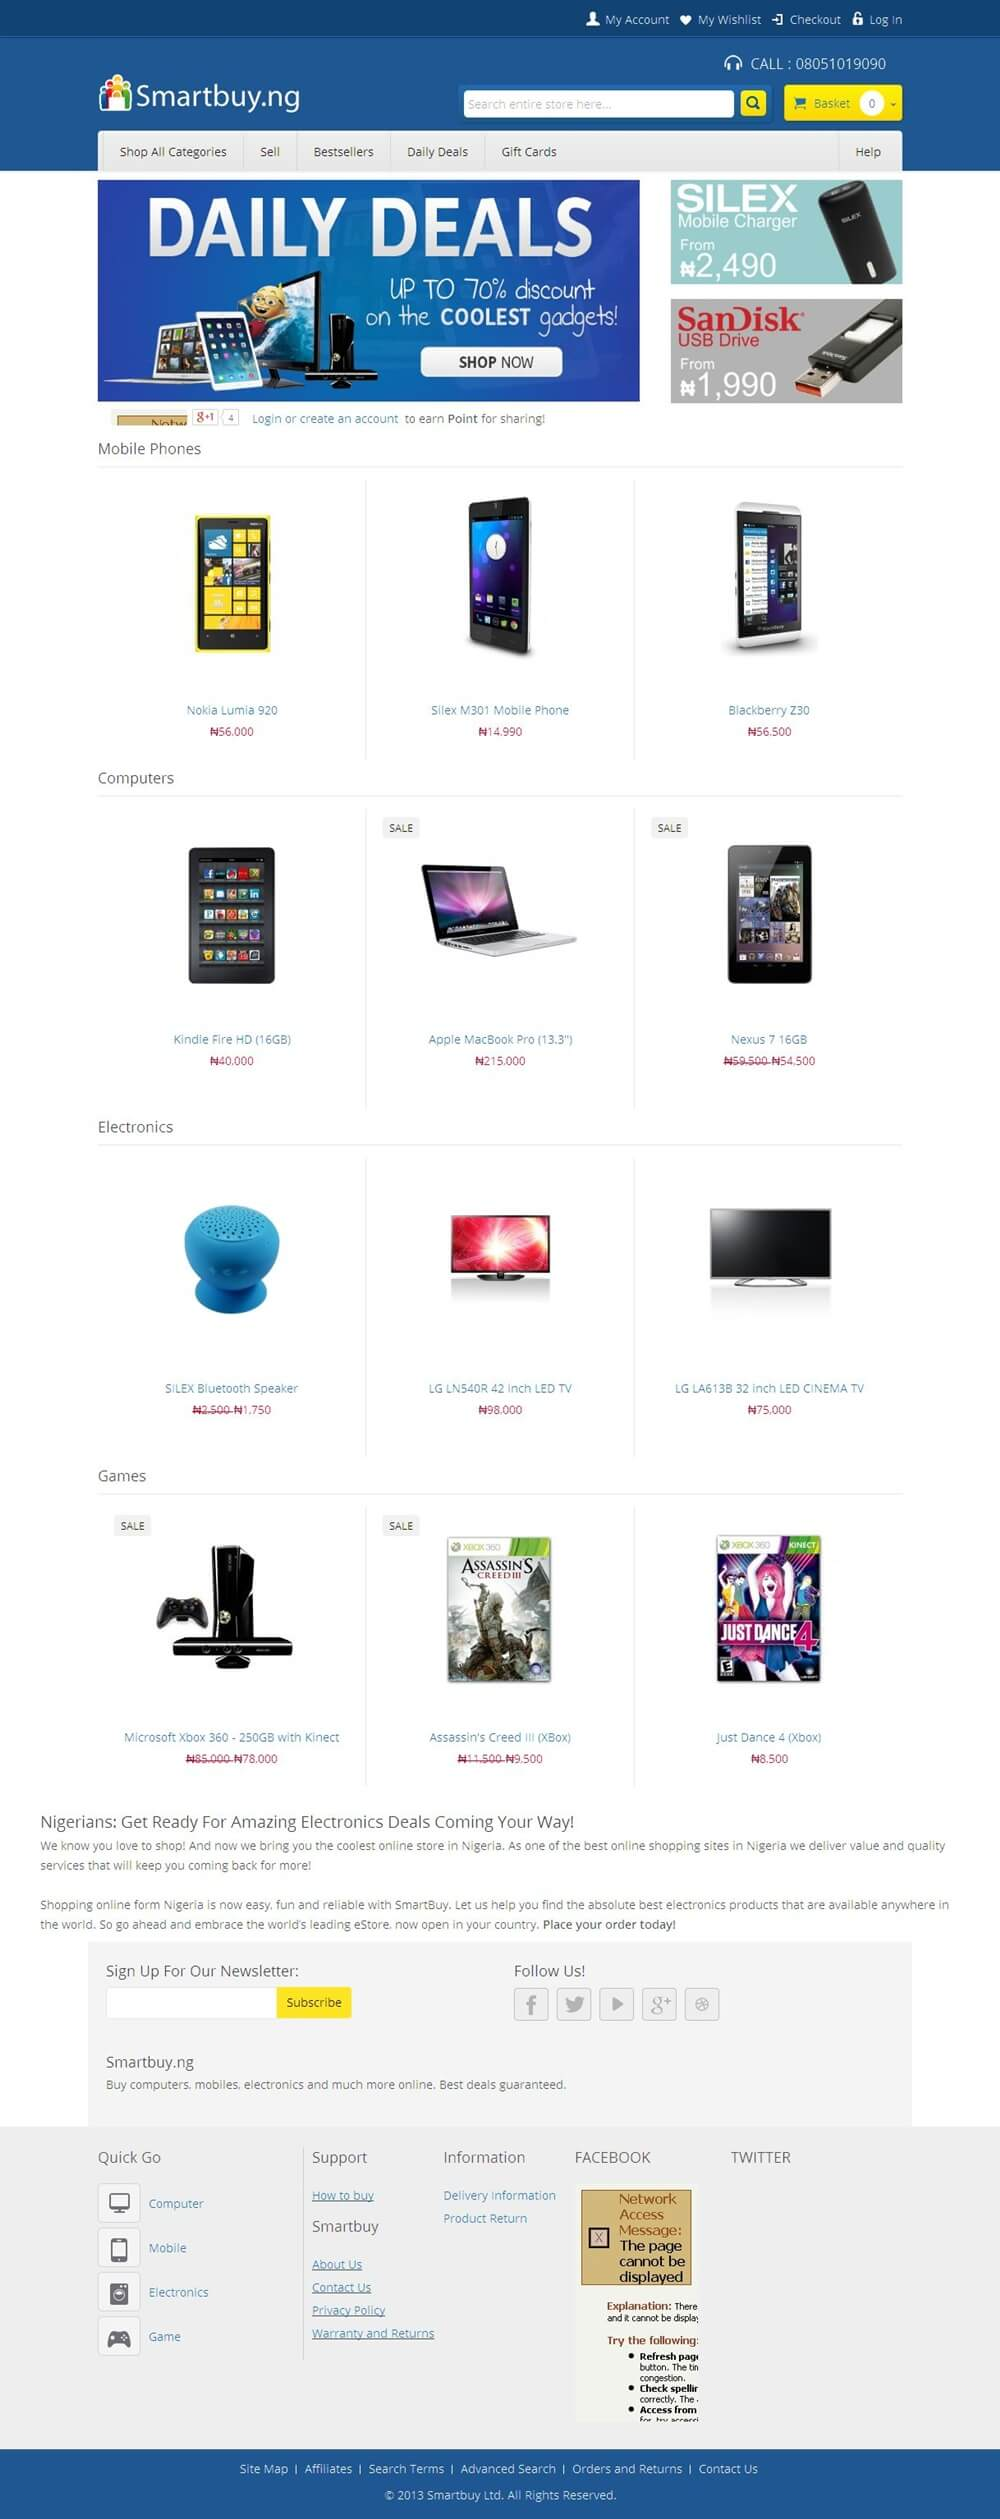 A PHP Based Marketplace for Electronic Products